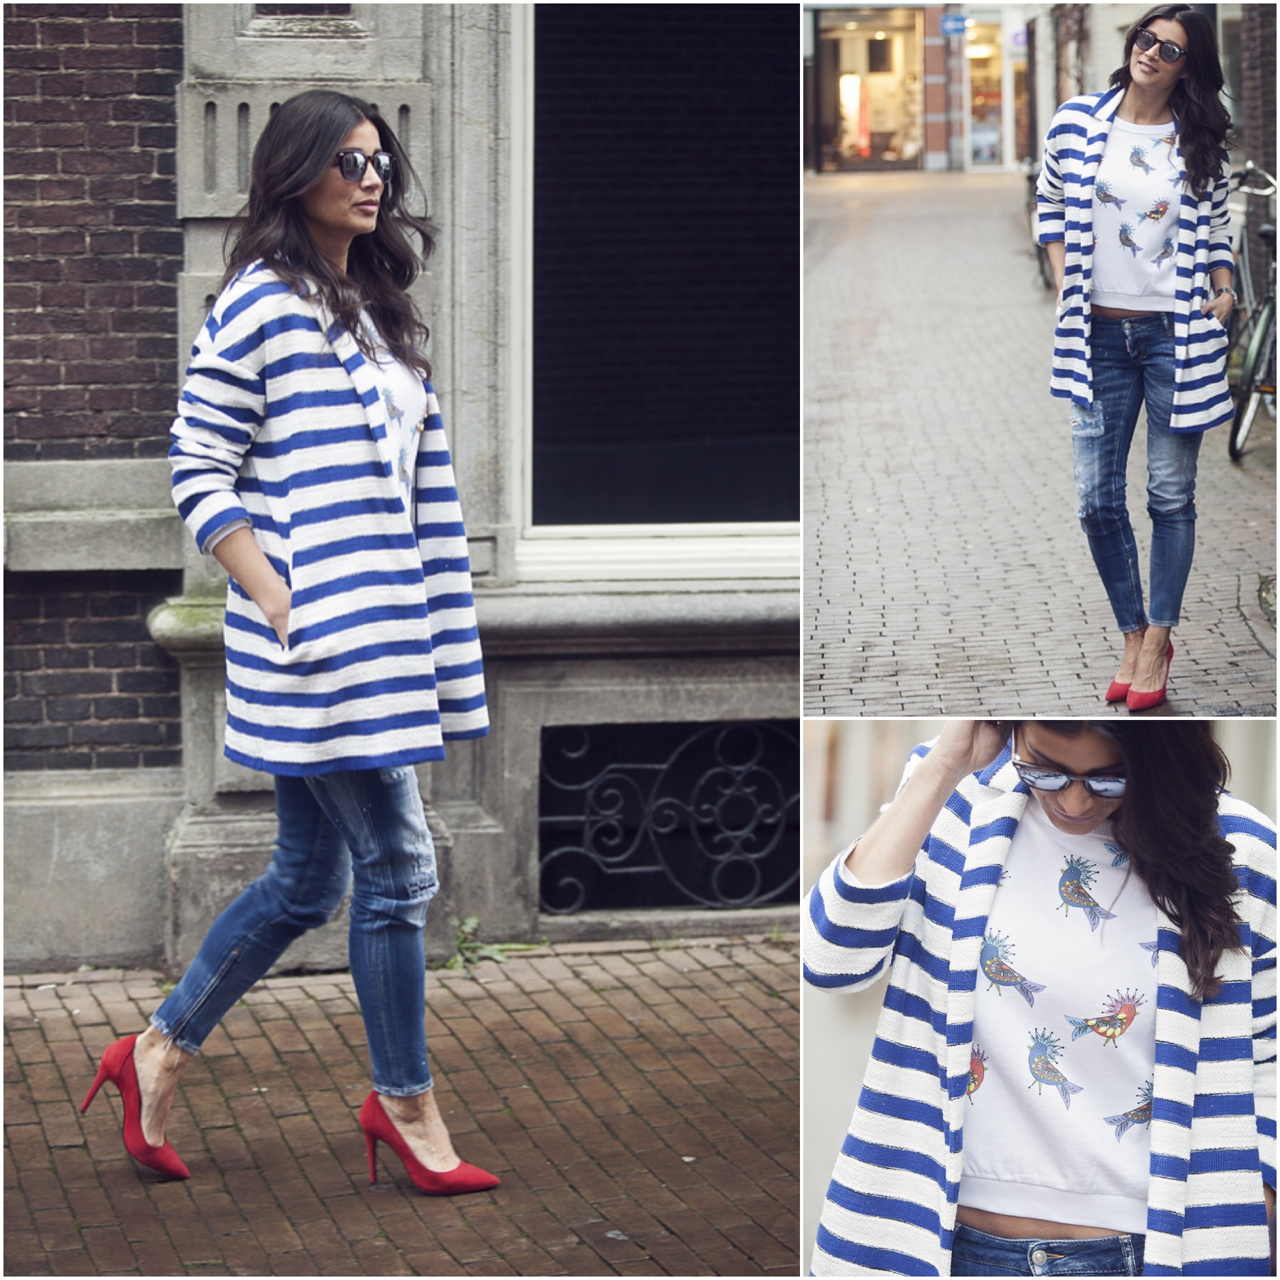 streetstyle photography BlogForShops for Jimmy's Mode in Tilburg wearing striped blazer Pinko DSquared jeans